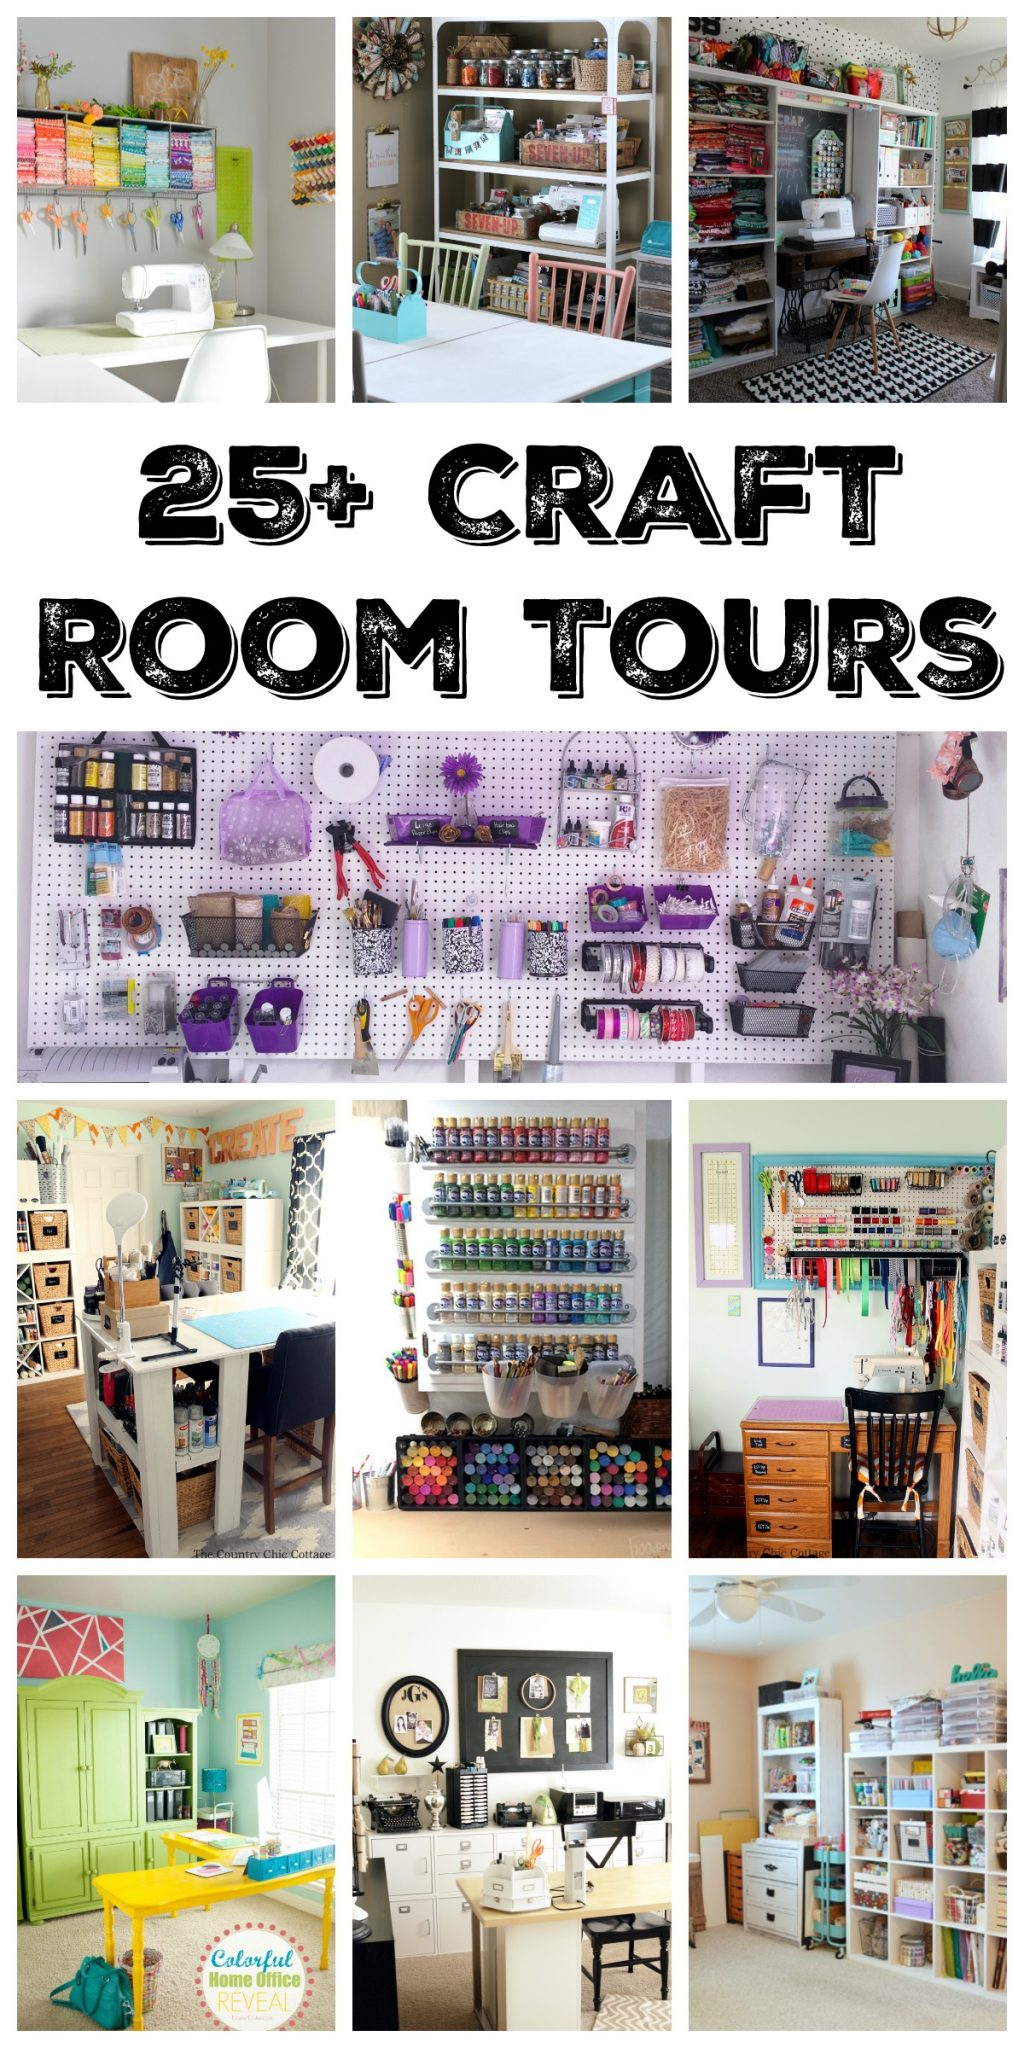 Over 25 amazing craft room tours! Get inspired to create your own craft room design with these organized craft rooms!